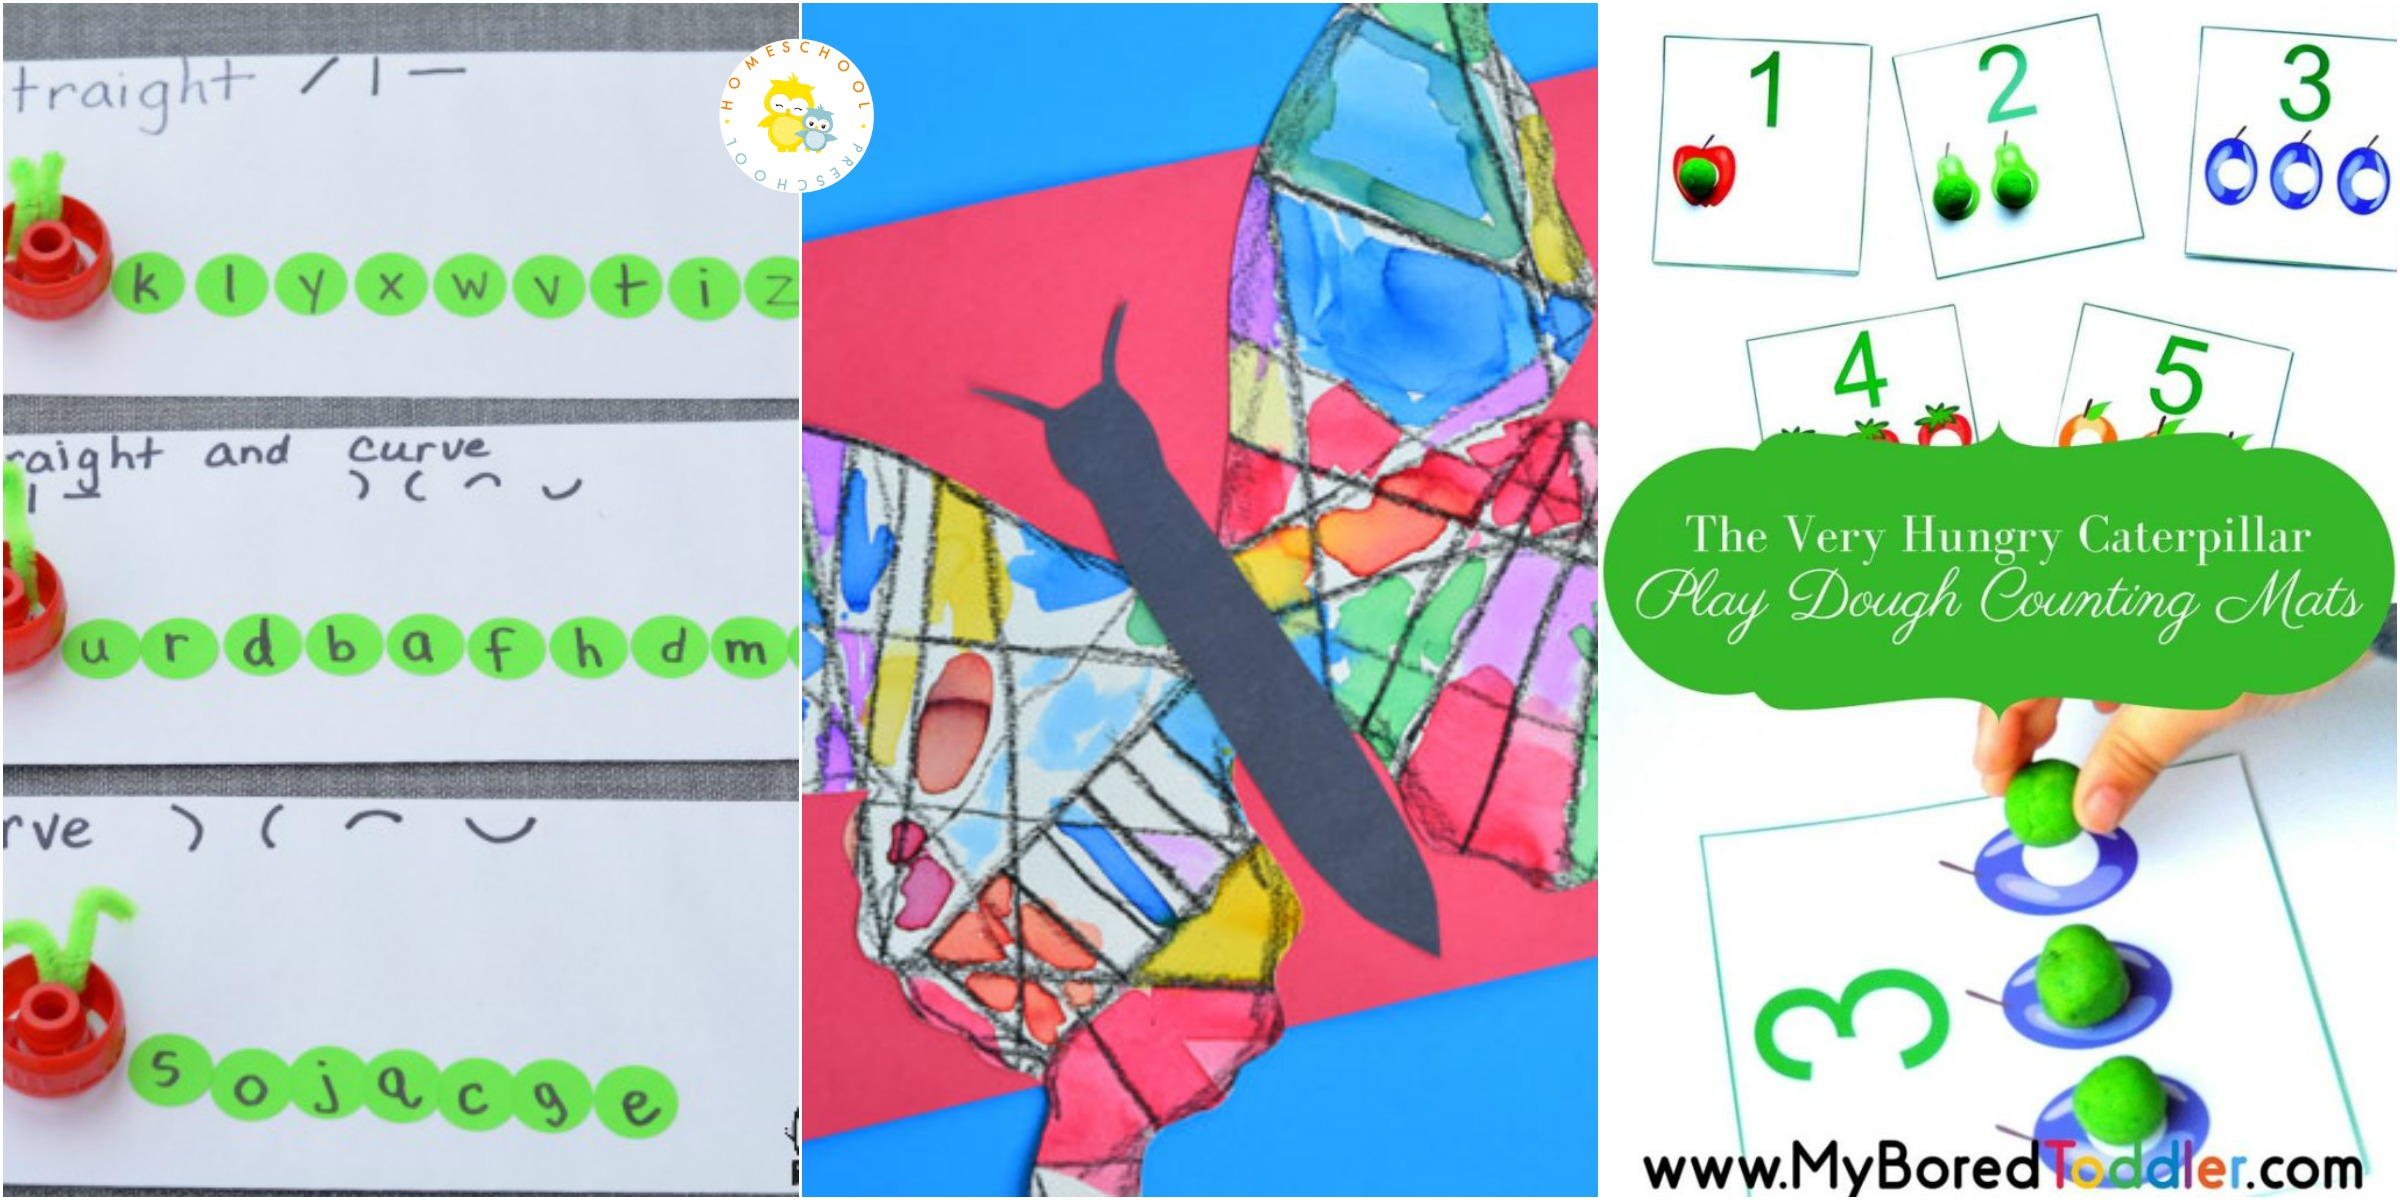 There are so many lessons and skills to go along with The Very Hungry Caterpillar! These Very Hungry Caterpillar activities are a great place to start!